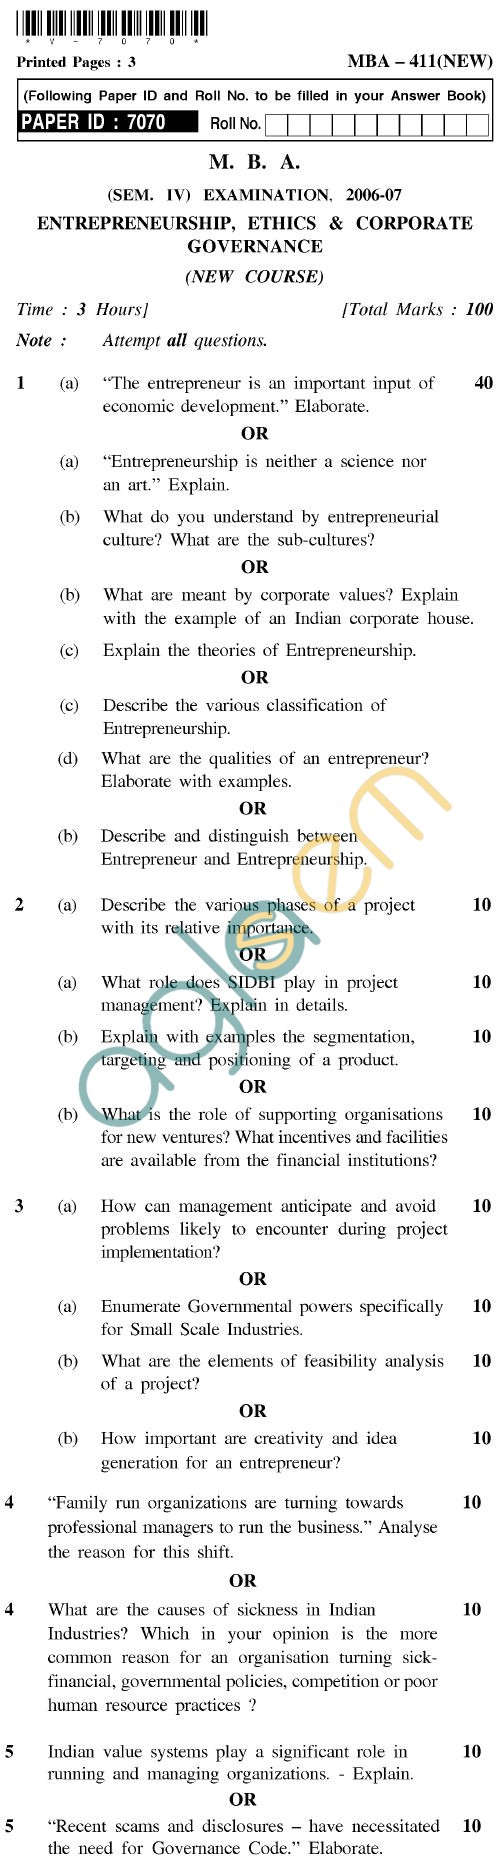 UPTU MBA Question Papers - MBA-411 (New)-Entrepreneurship, Ethics & Corporate Governance (New Cource)